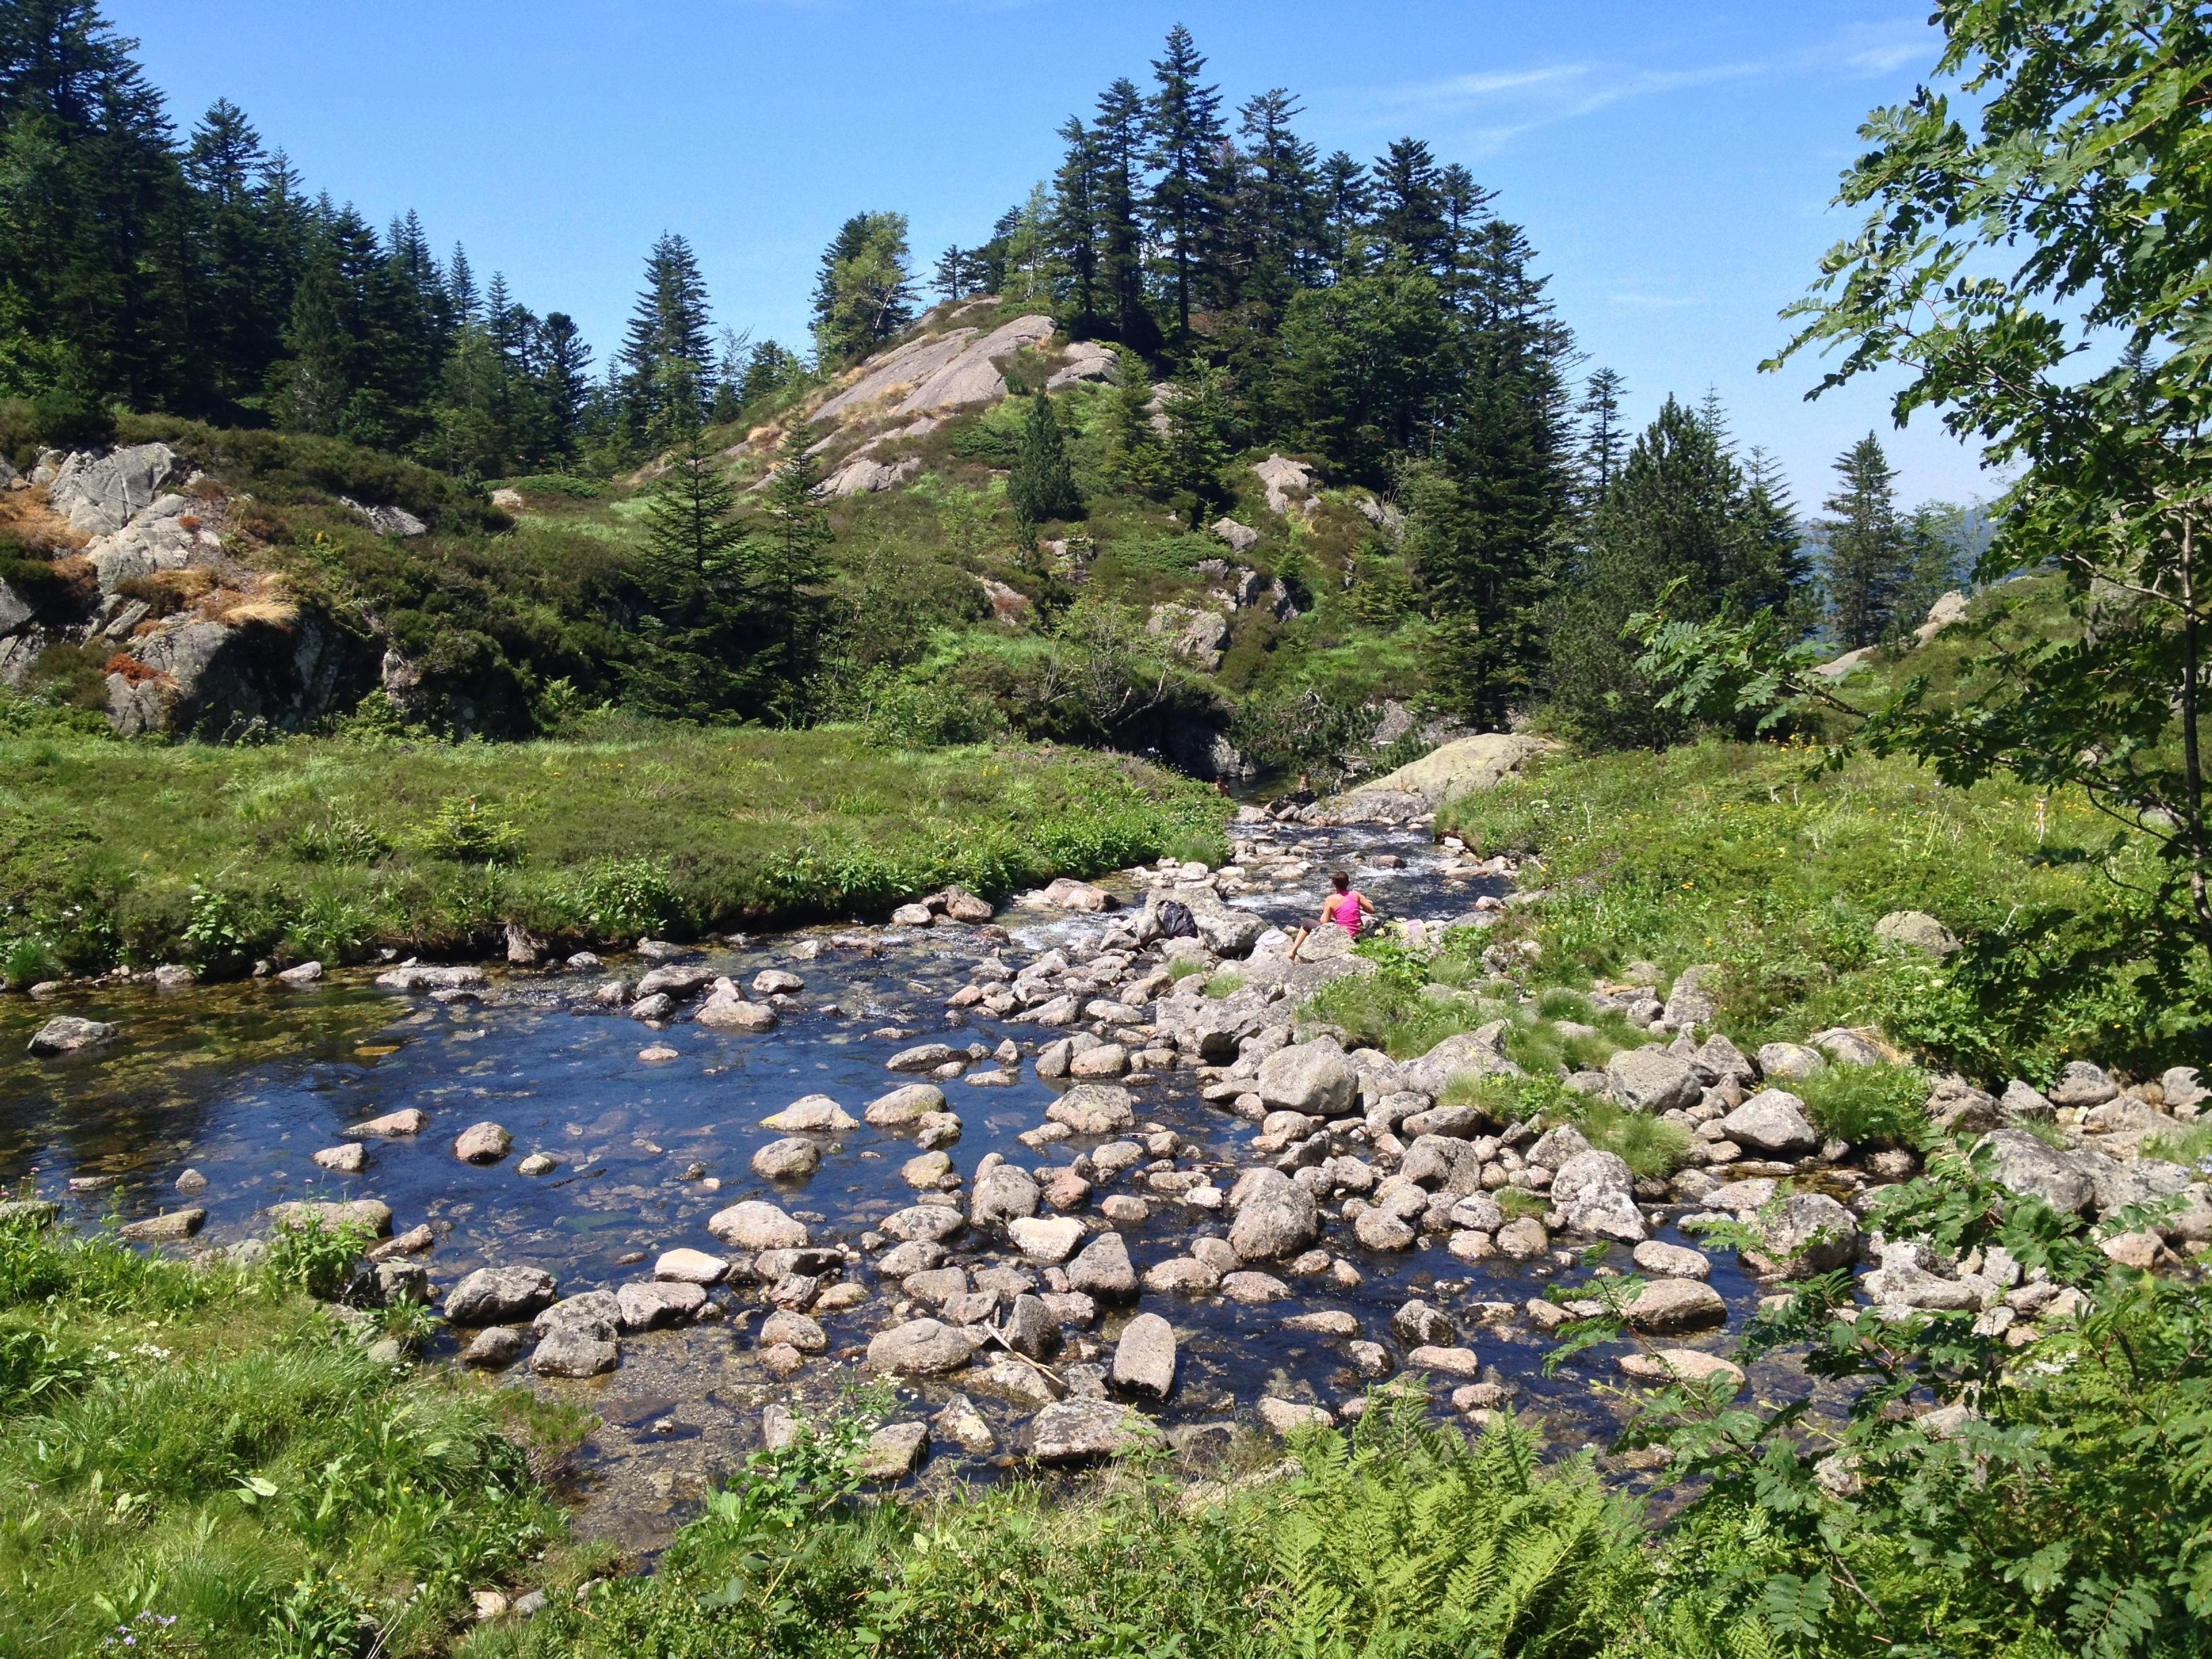 The refreshing pools in the pass above the waterfall were perfect to relax and picnic